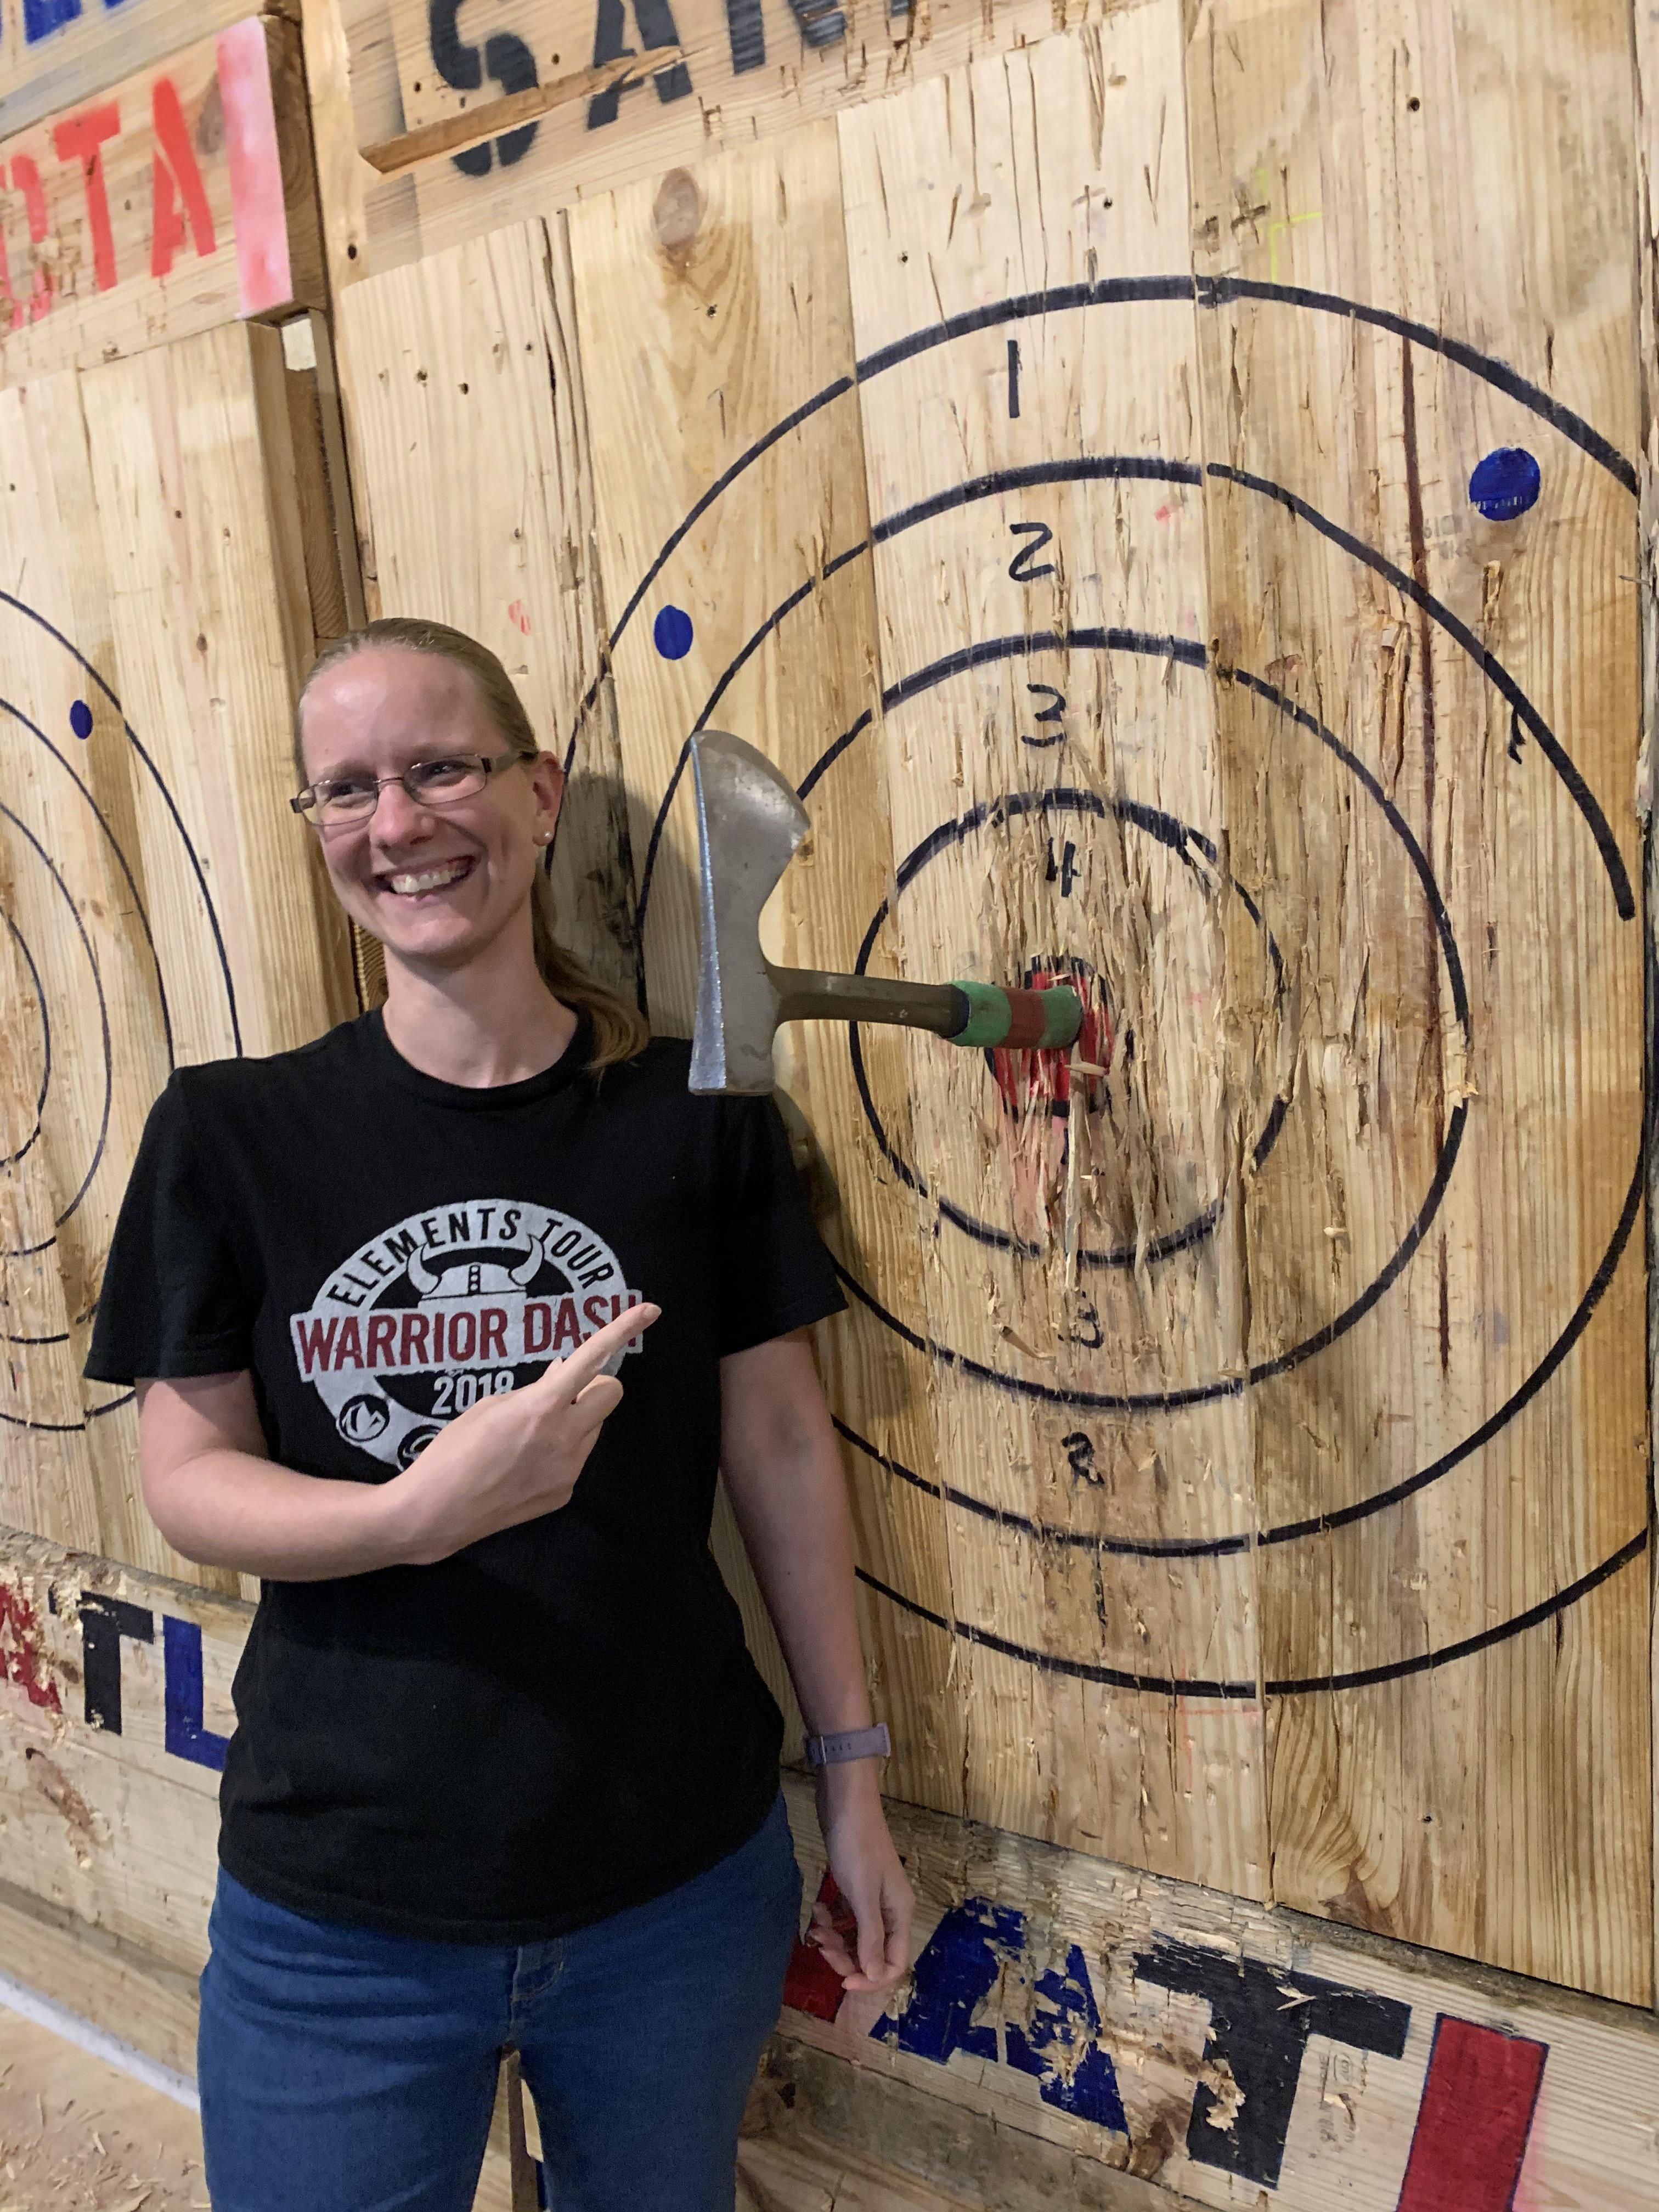 My wife does a great job throwing axes also